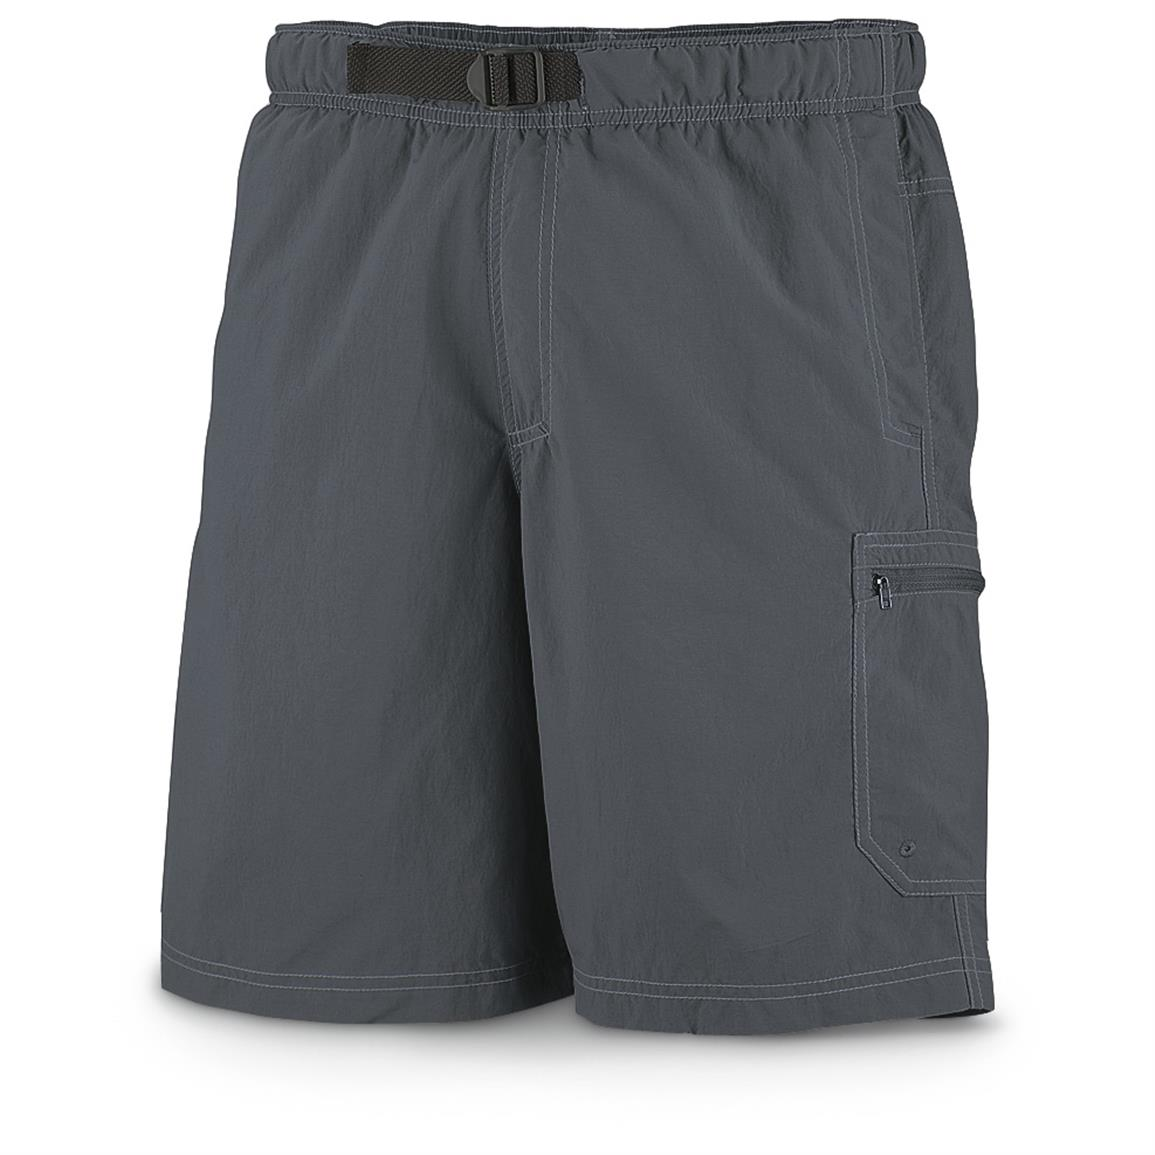 Columbia Men's Palmerston Peak Water Shorts, Gray Ash